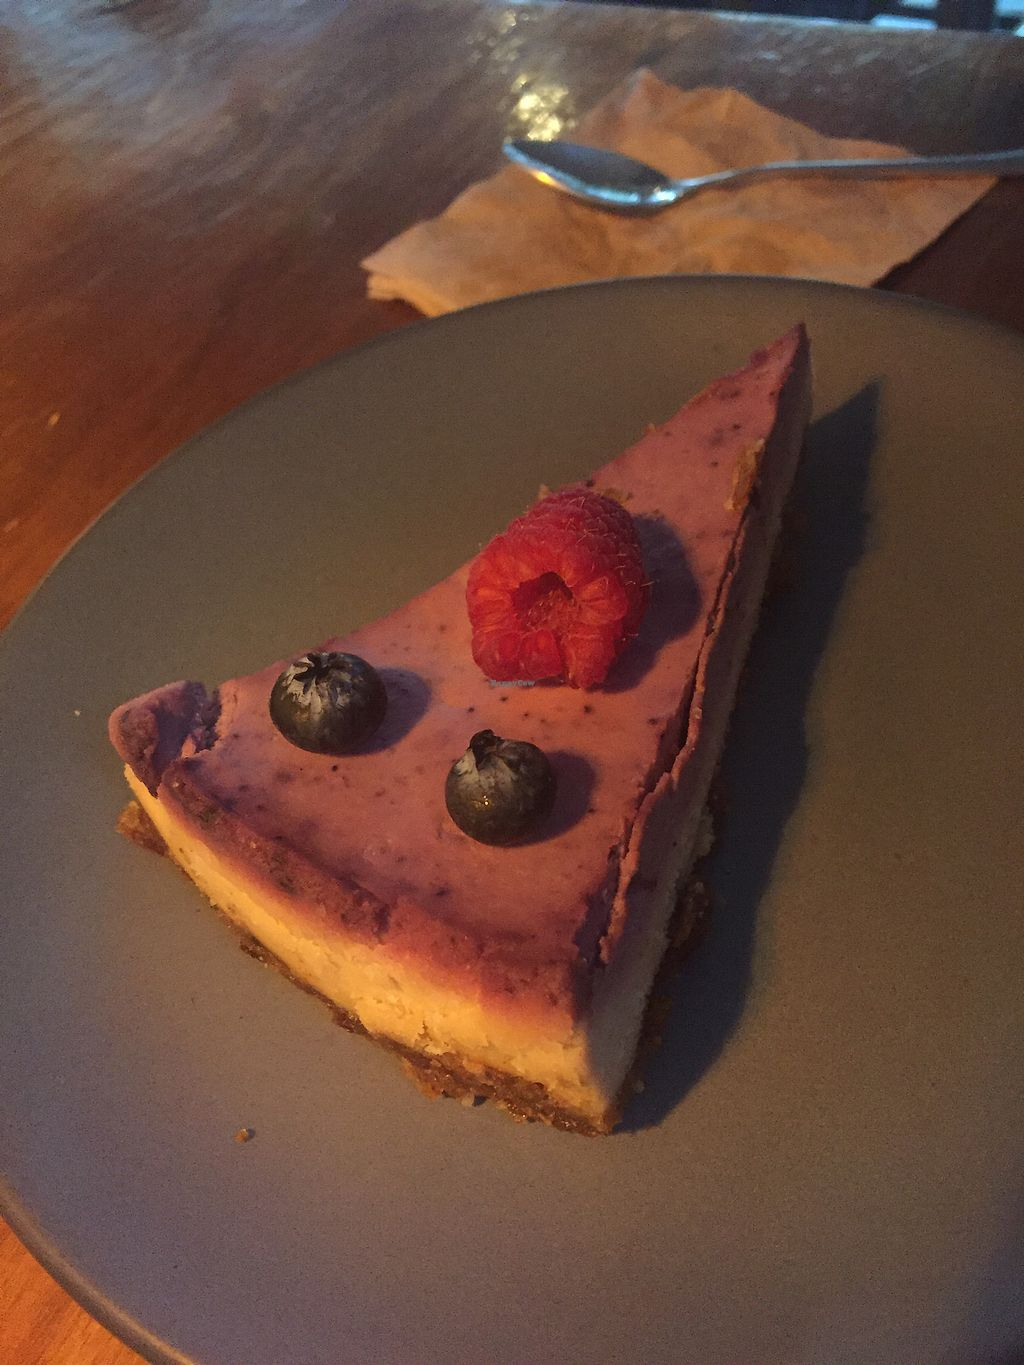 """Photo of Forever - Roma  by <a href=""""/members/profile/Hope93"""">Hope93</a> <br/>Cheesecake de Moras <br/> January 16, 2018  - <a href='/contact/abuse/image/60564/347310'>Report</a>"""